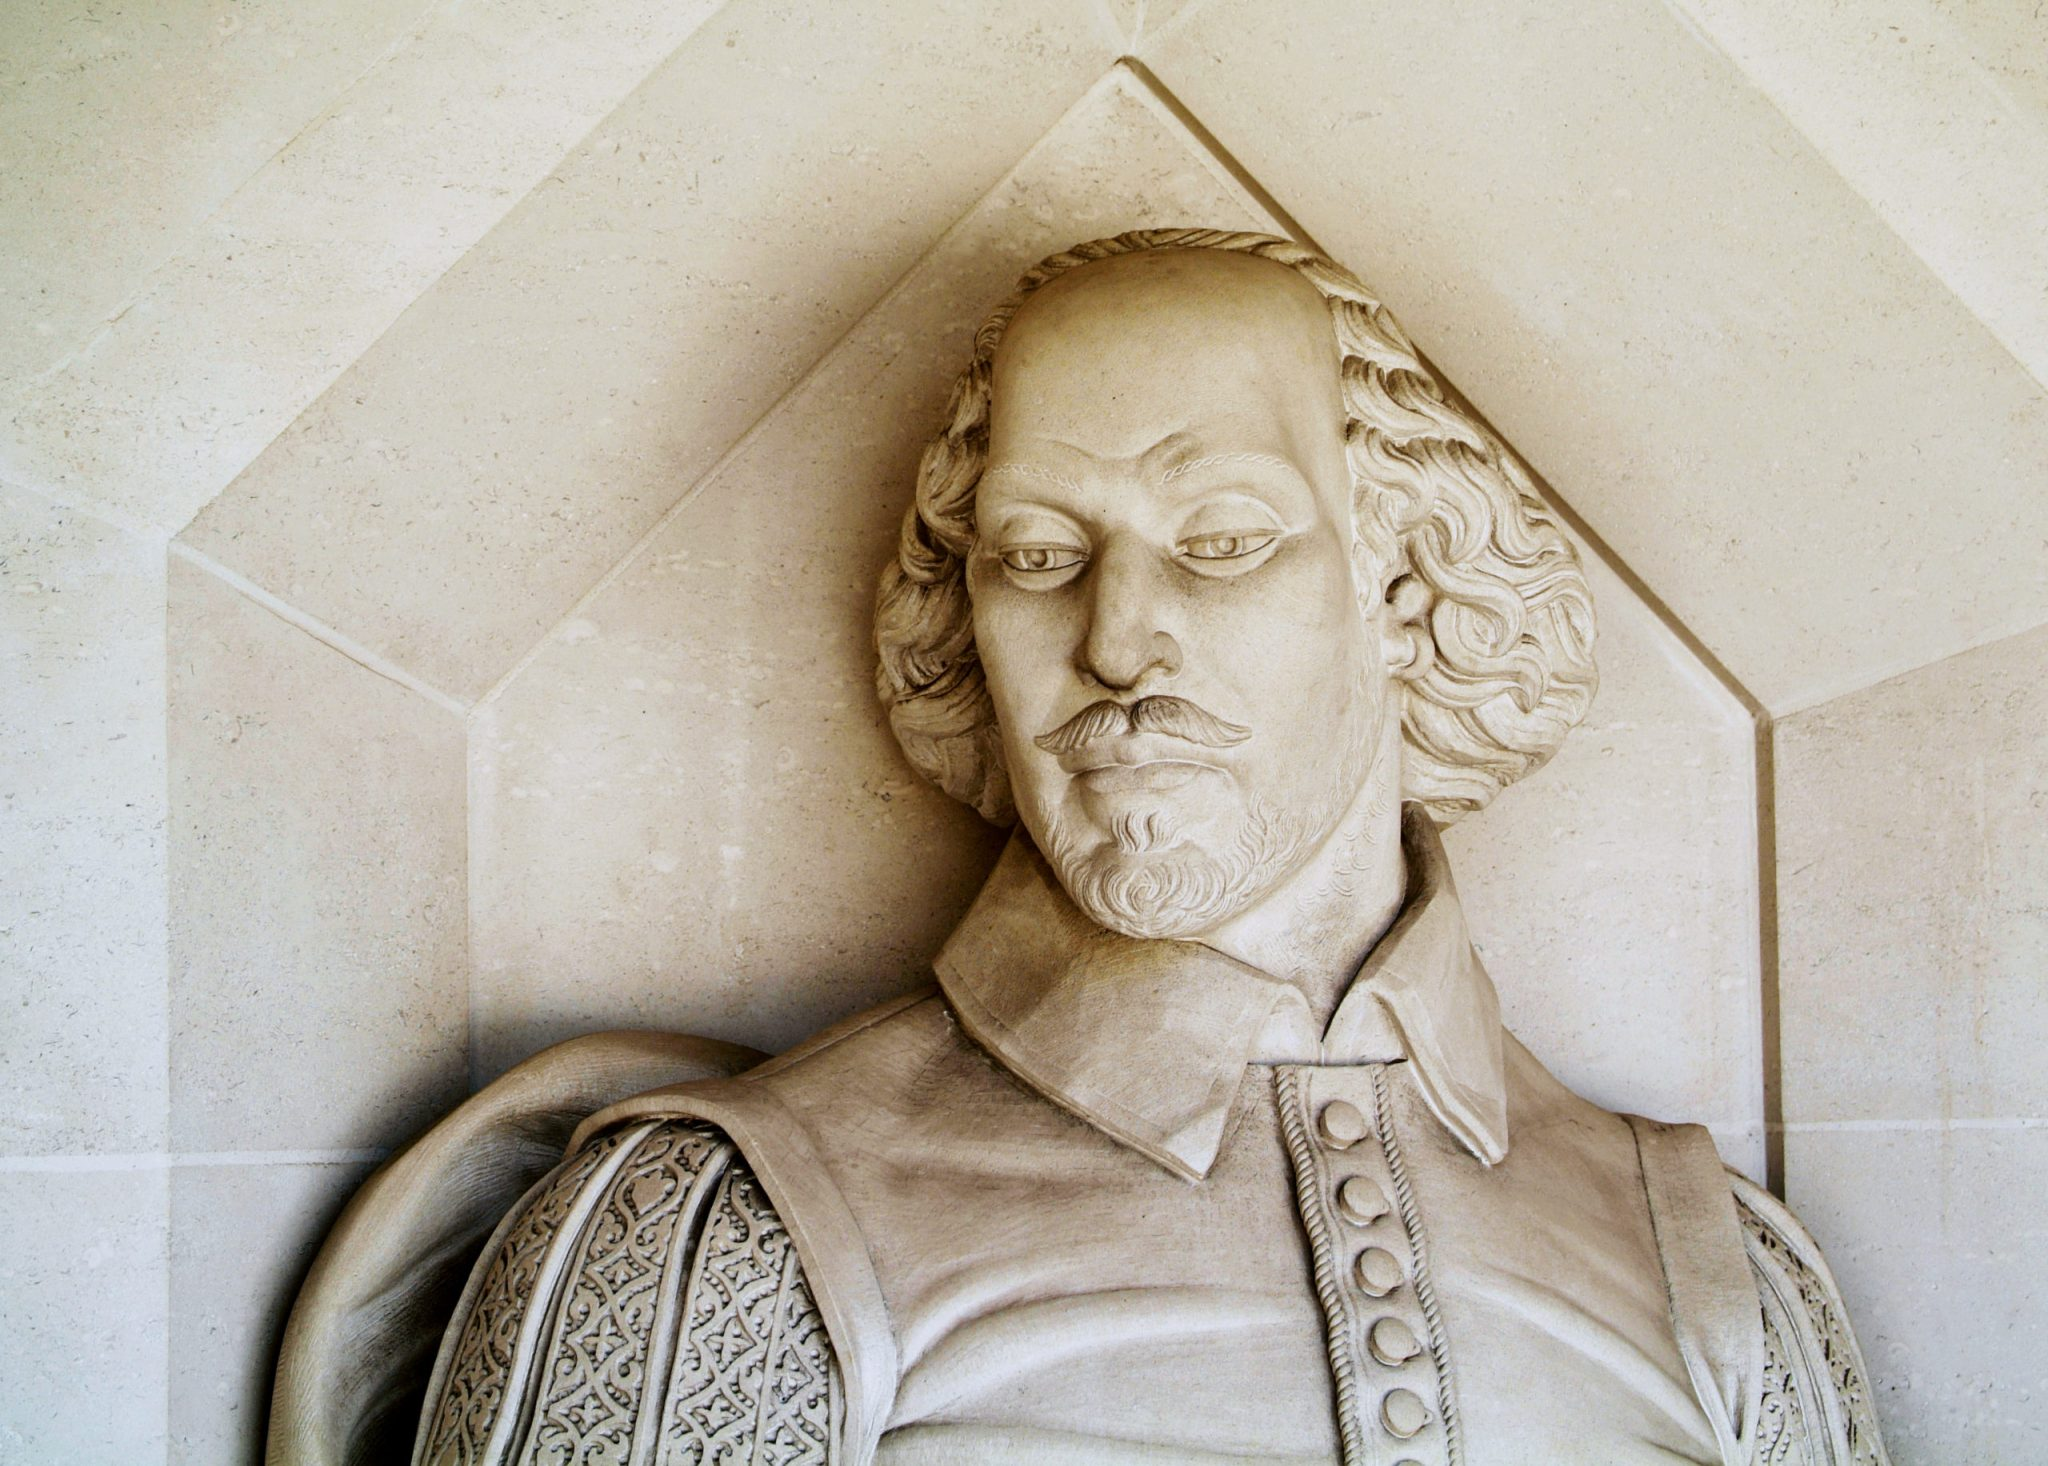 the Shakespeare monument